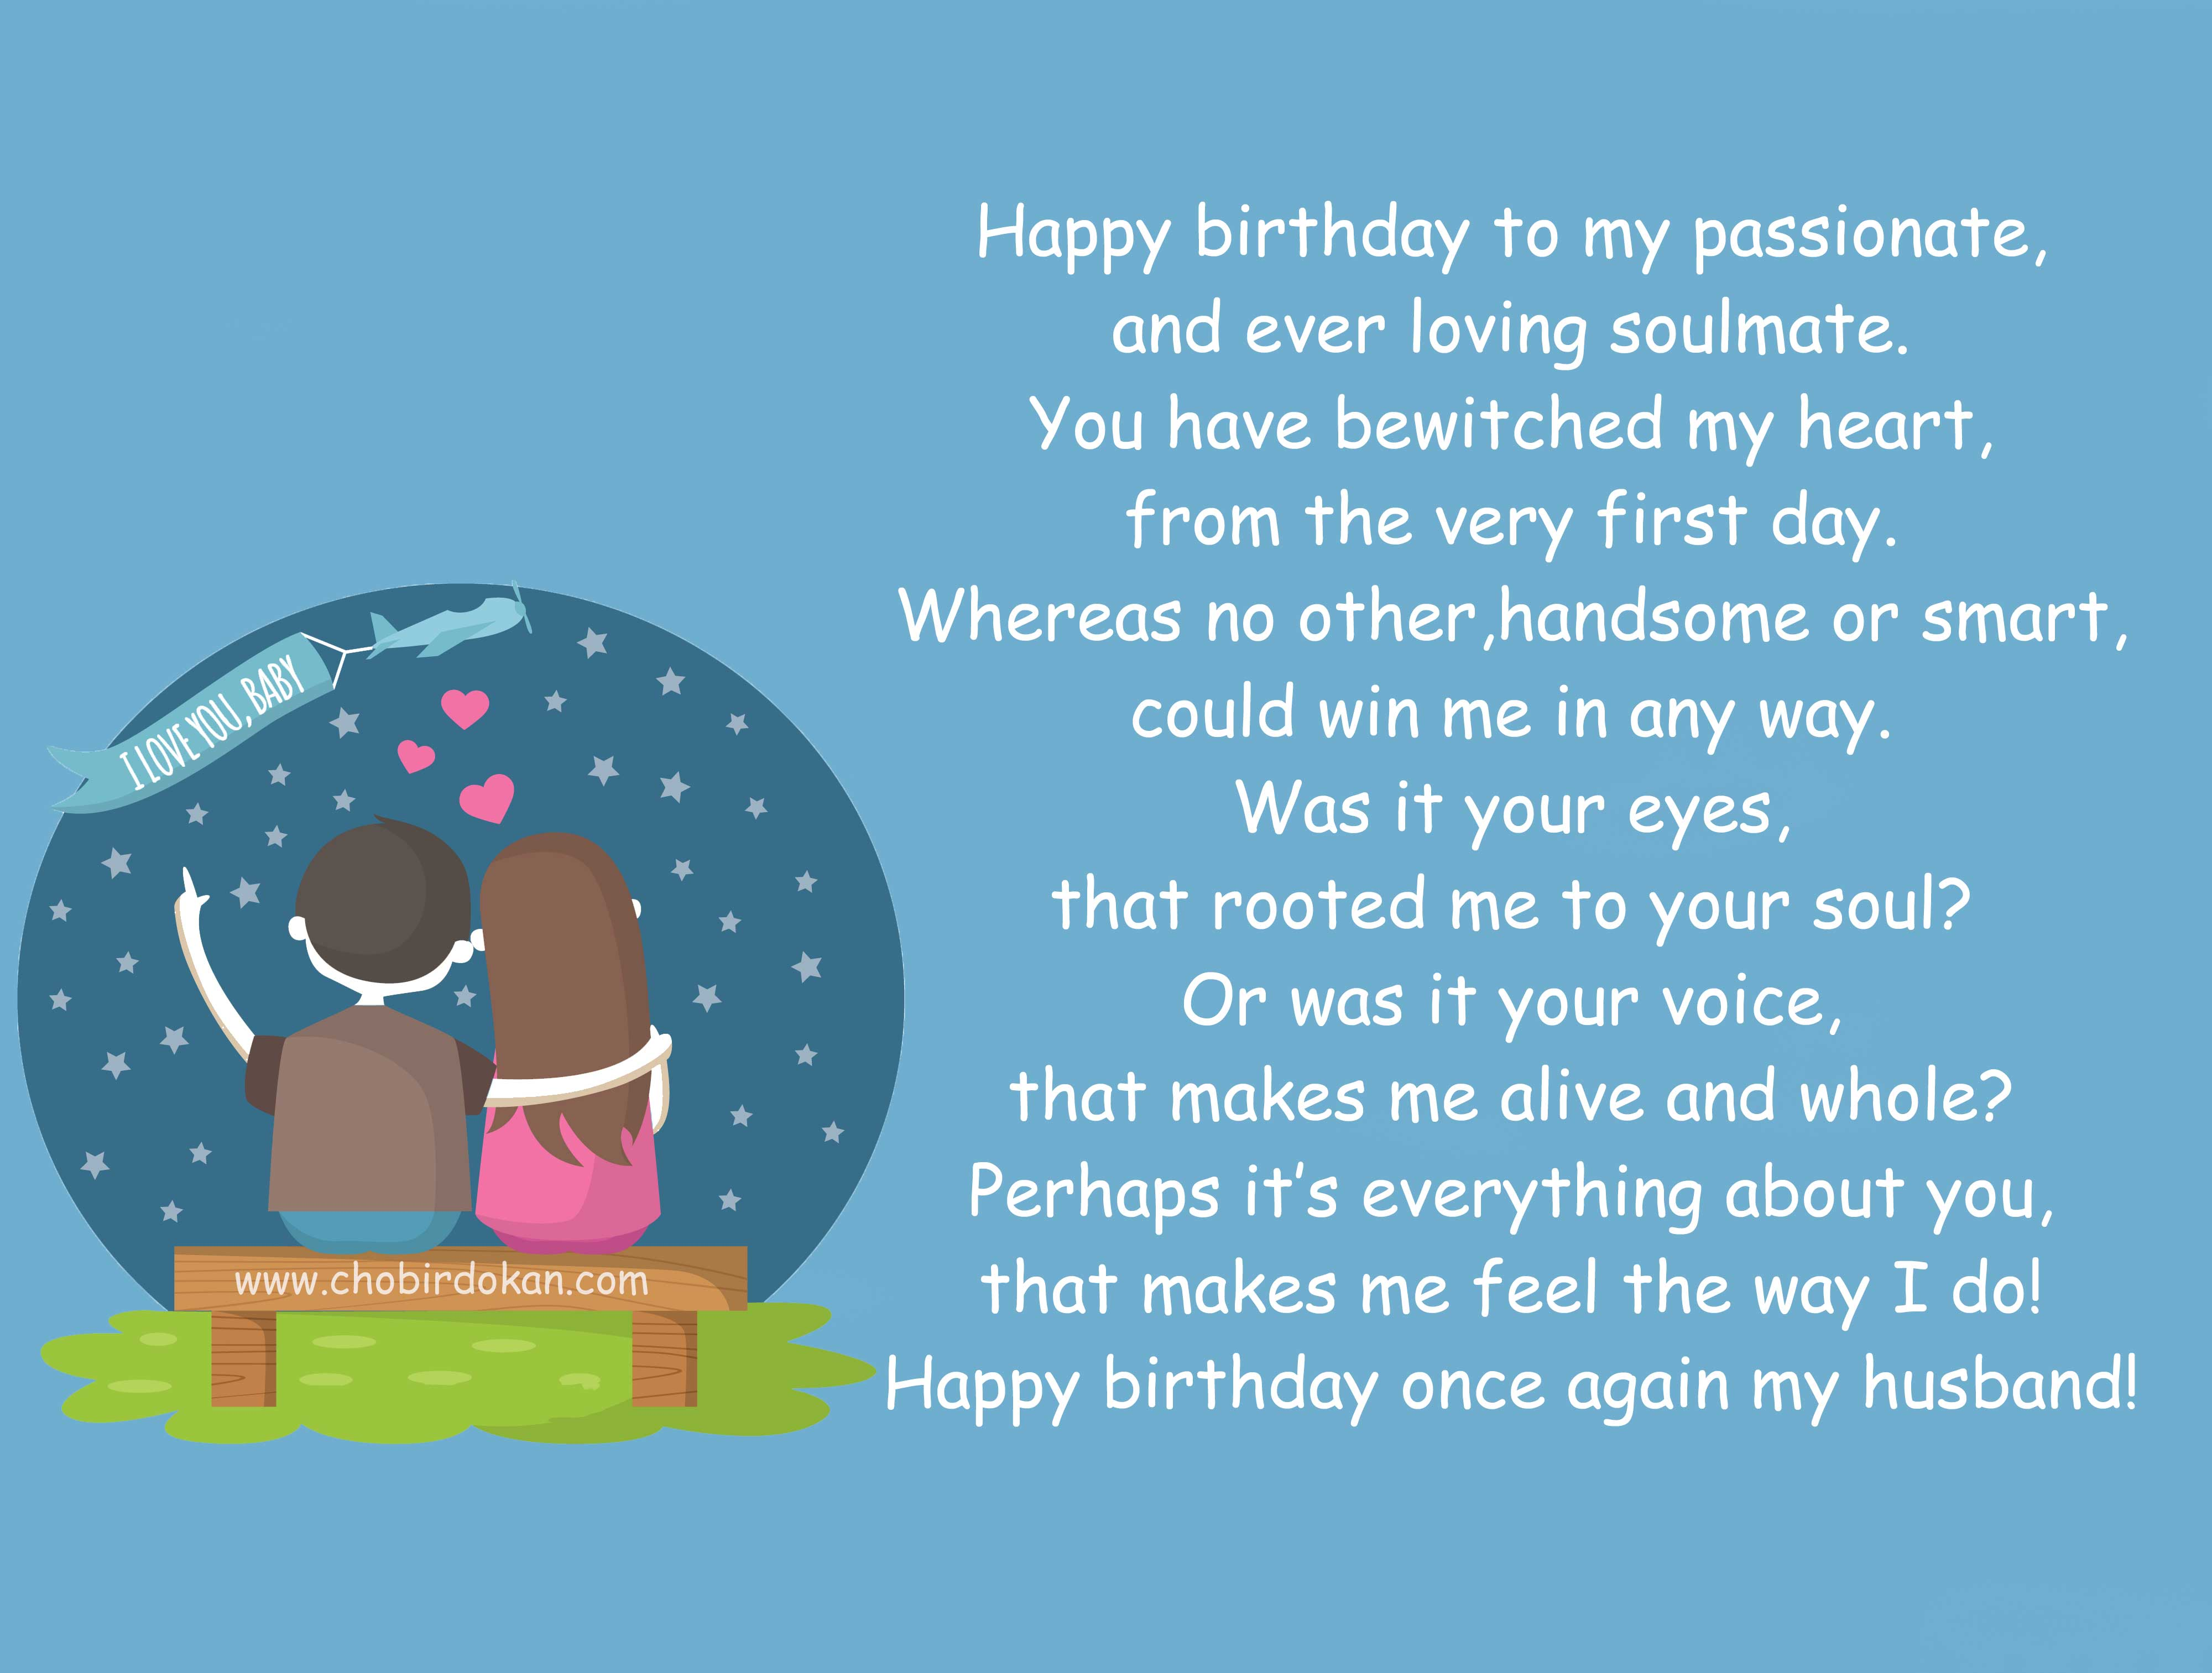 Birthday love poems for husband from wife